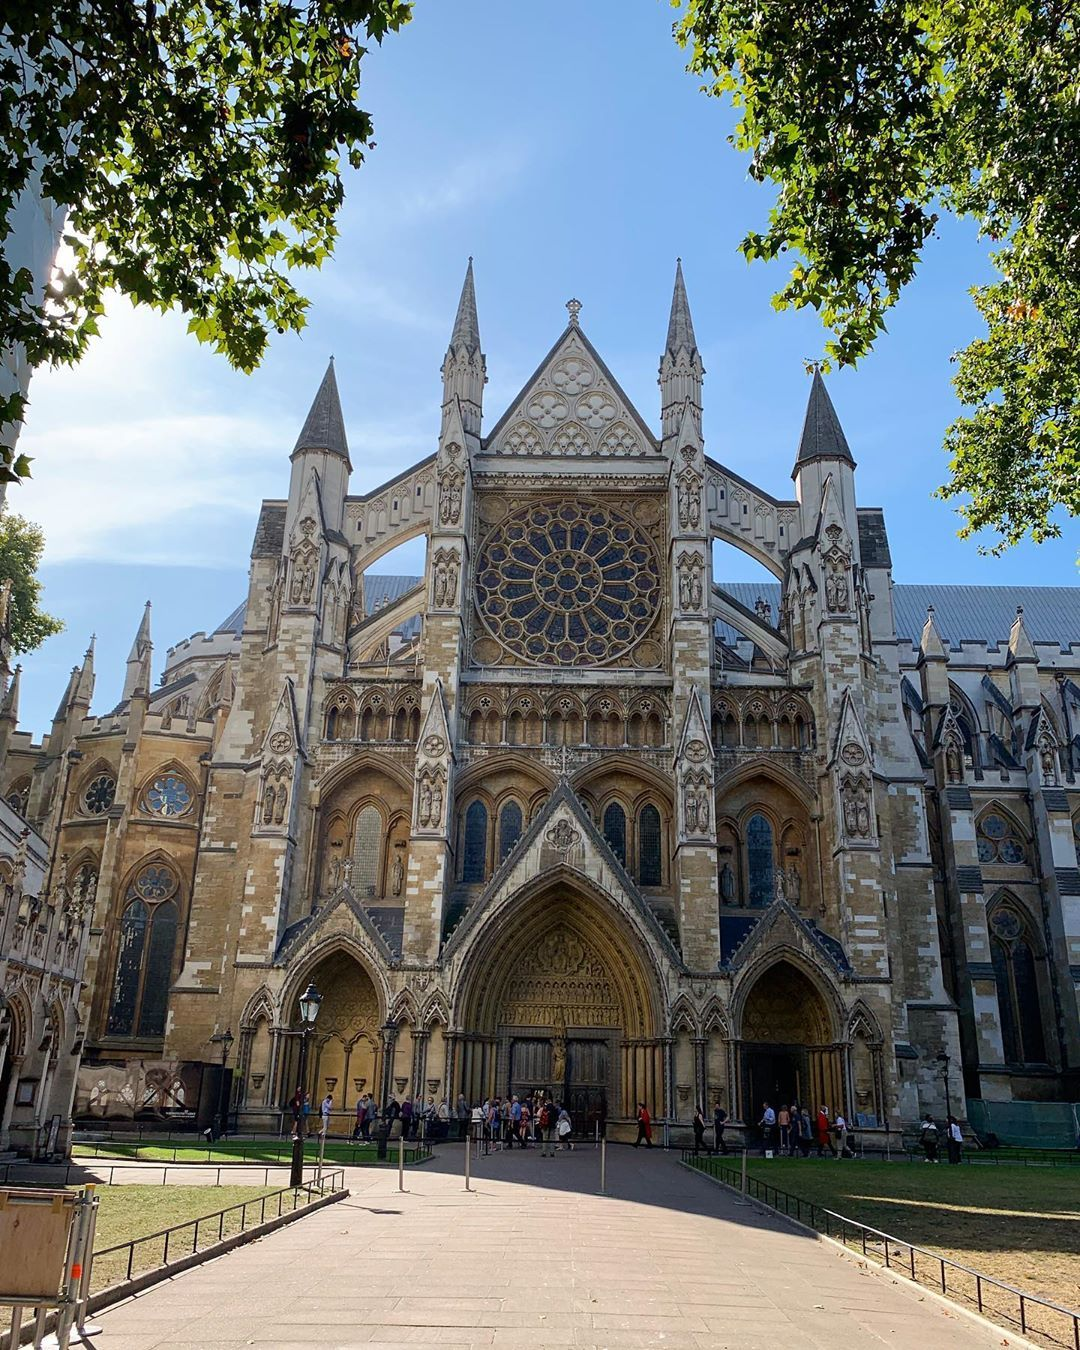 Westminster Abbey🇬🇧😍 #london#love#life#me#mood#amazing#food#water#style#fitness#luxury#travel#sport#...